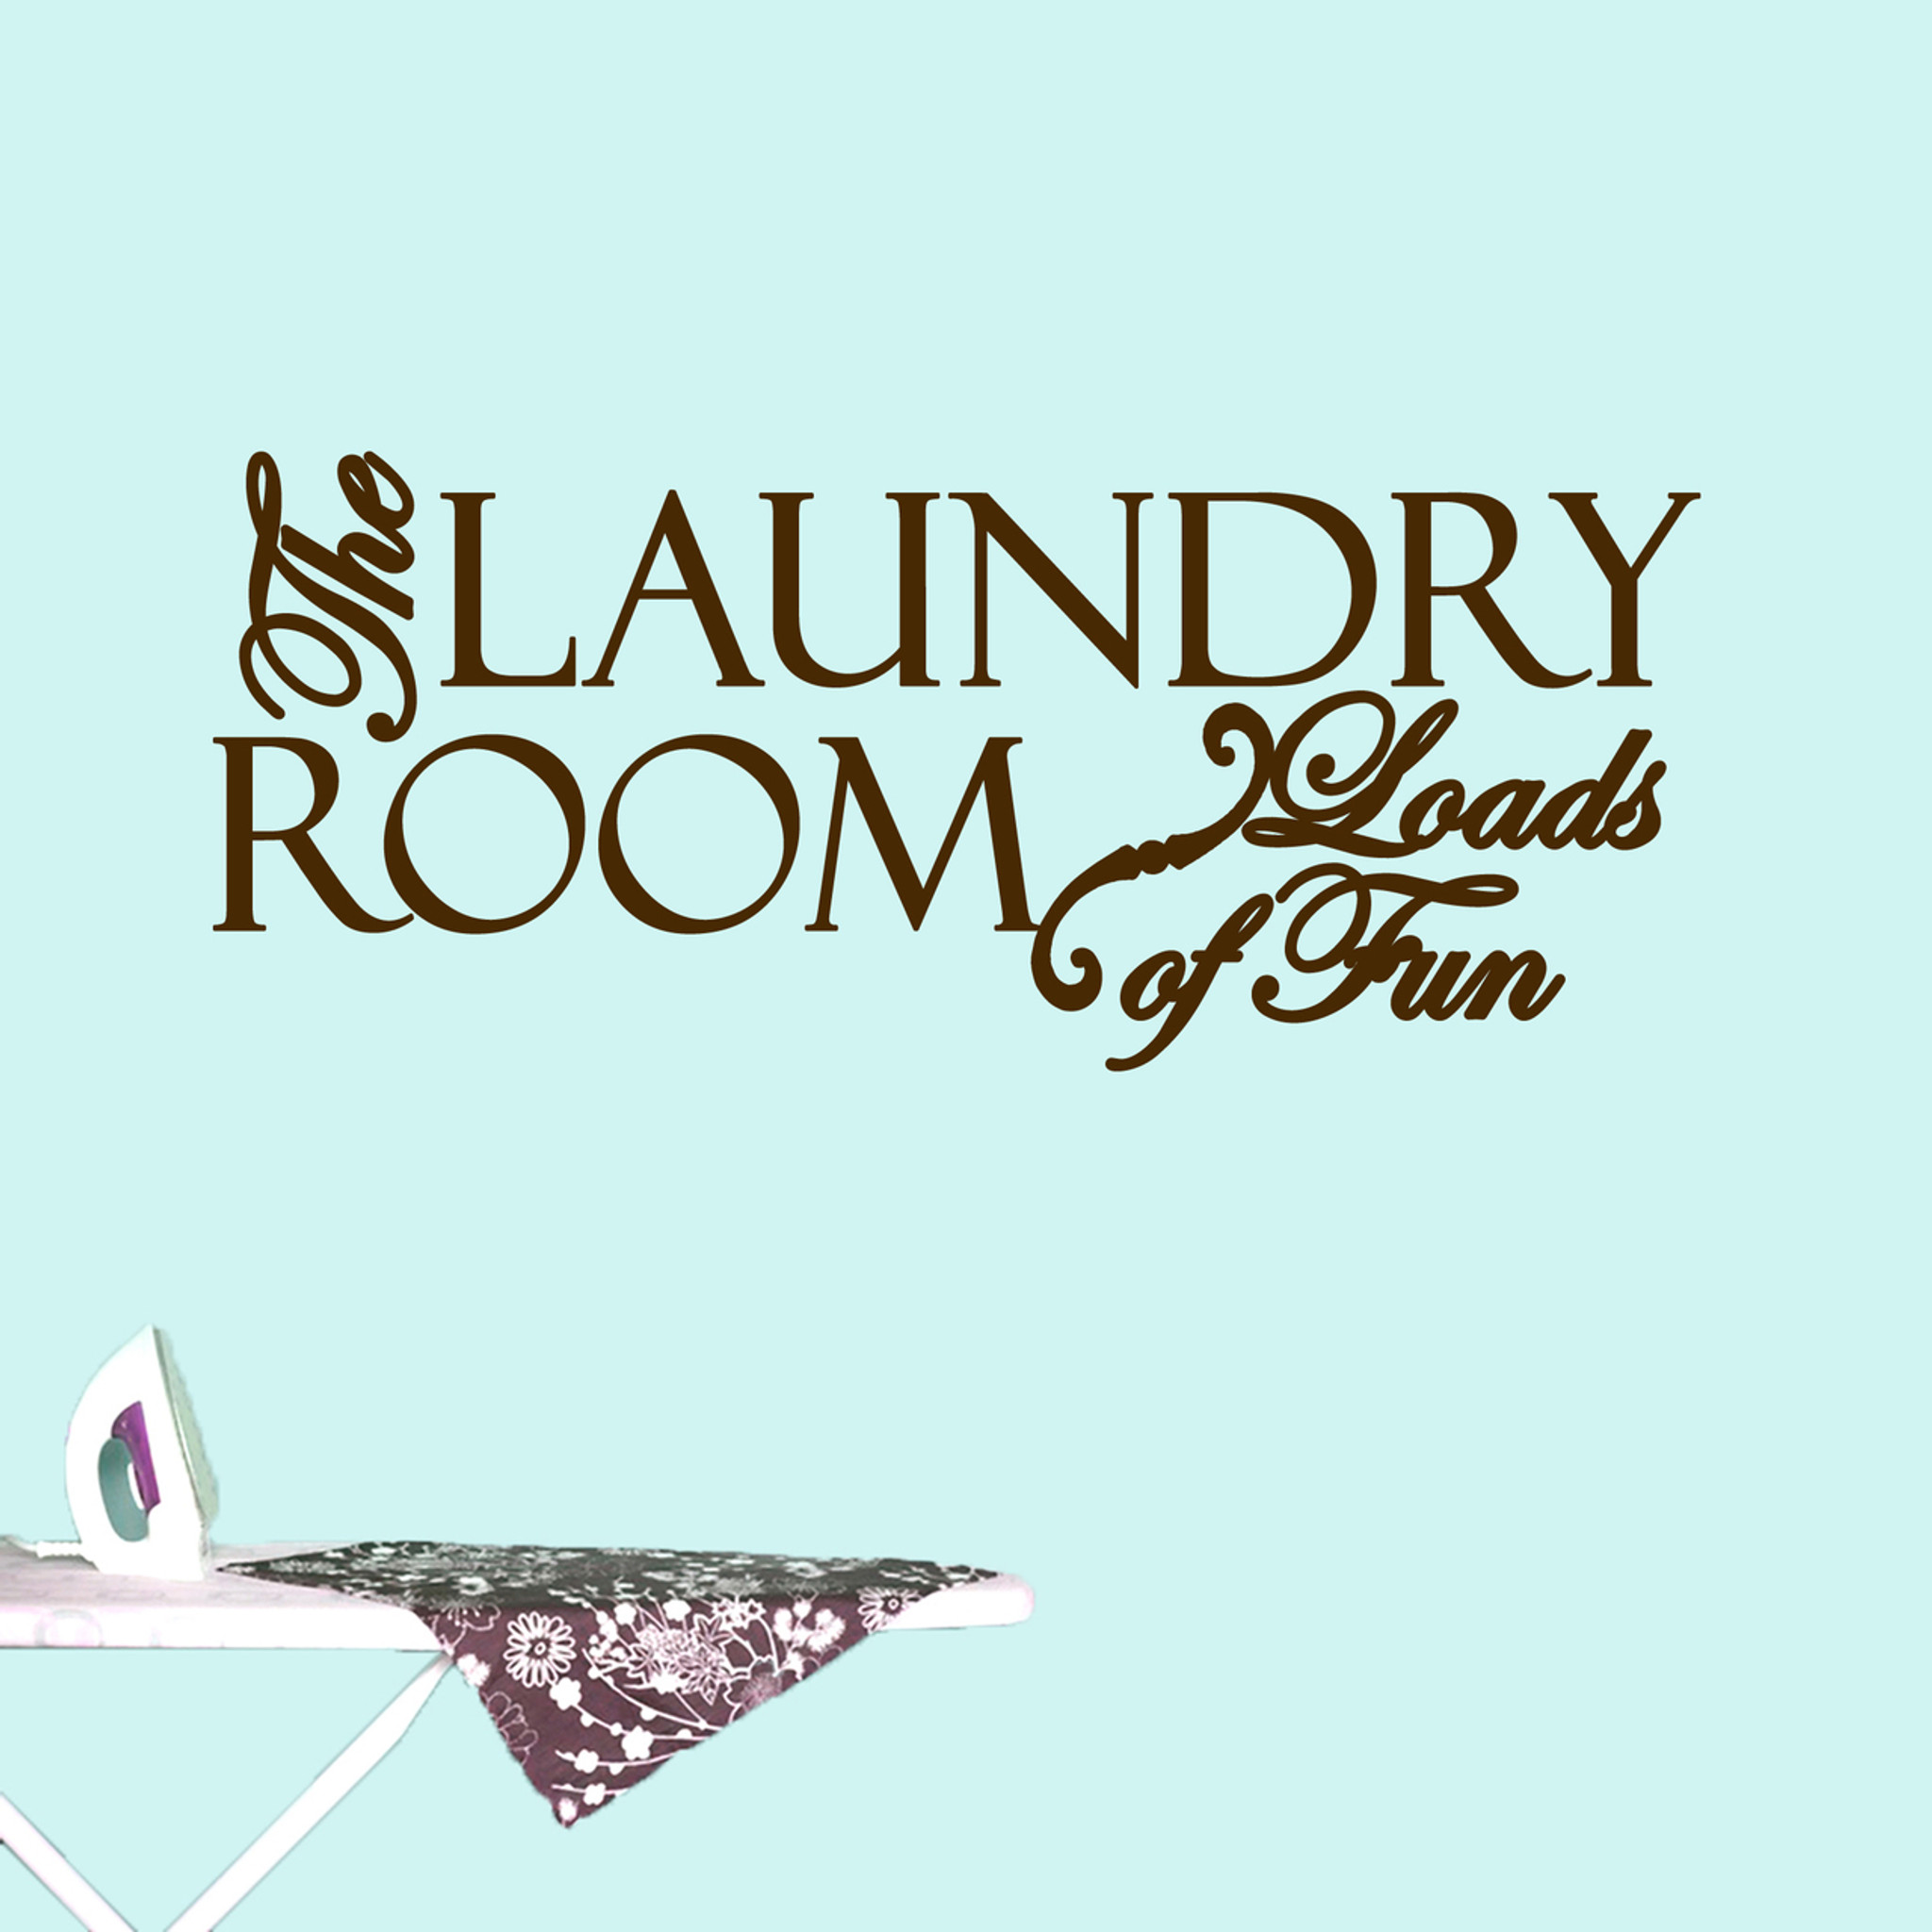 The Laundry Room Loads Of Fun Decal The Laundry Room Loads Of Fun Laundry & Bathroom Wall Decals Stickers